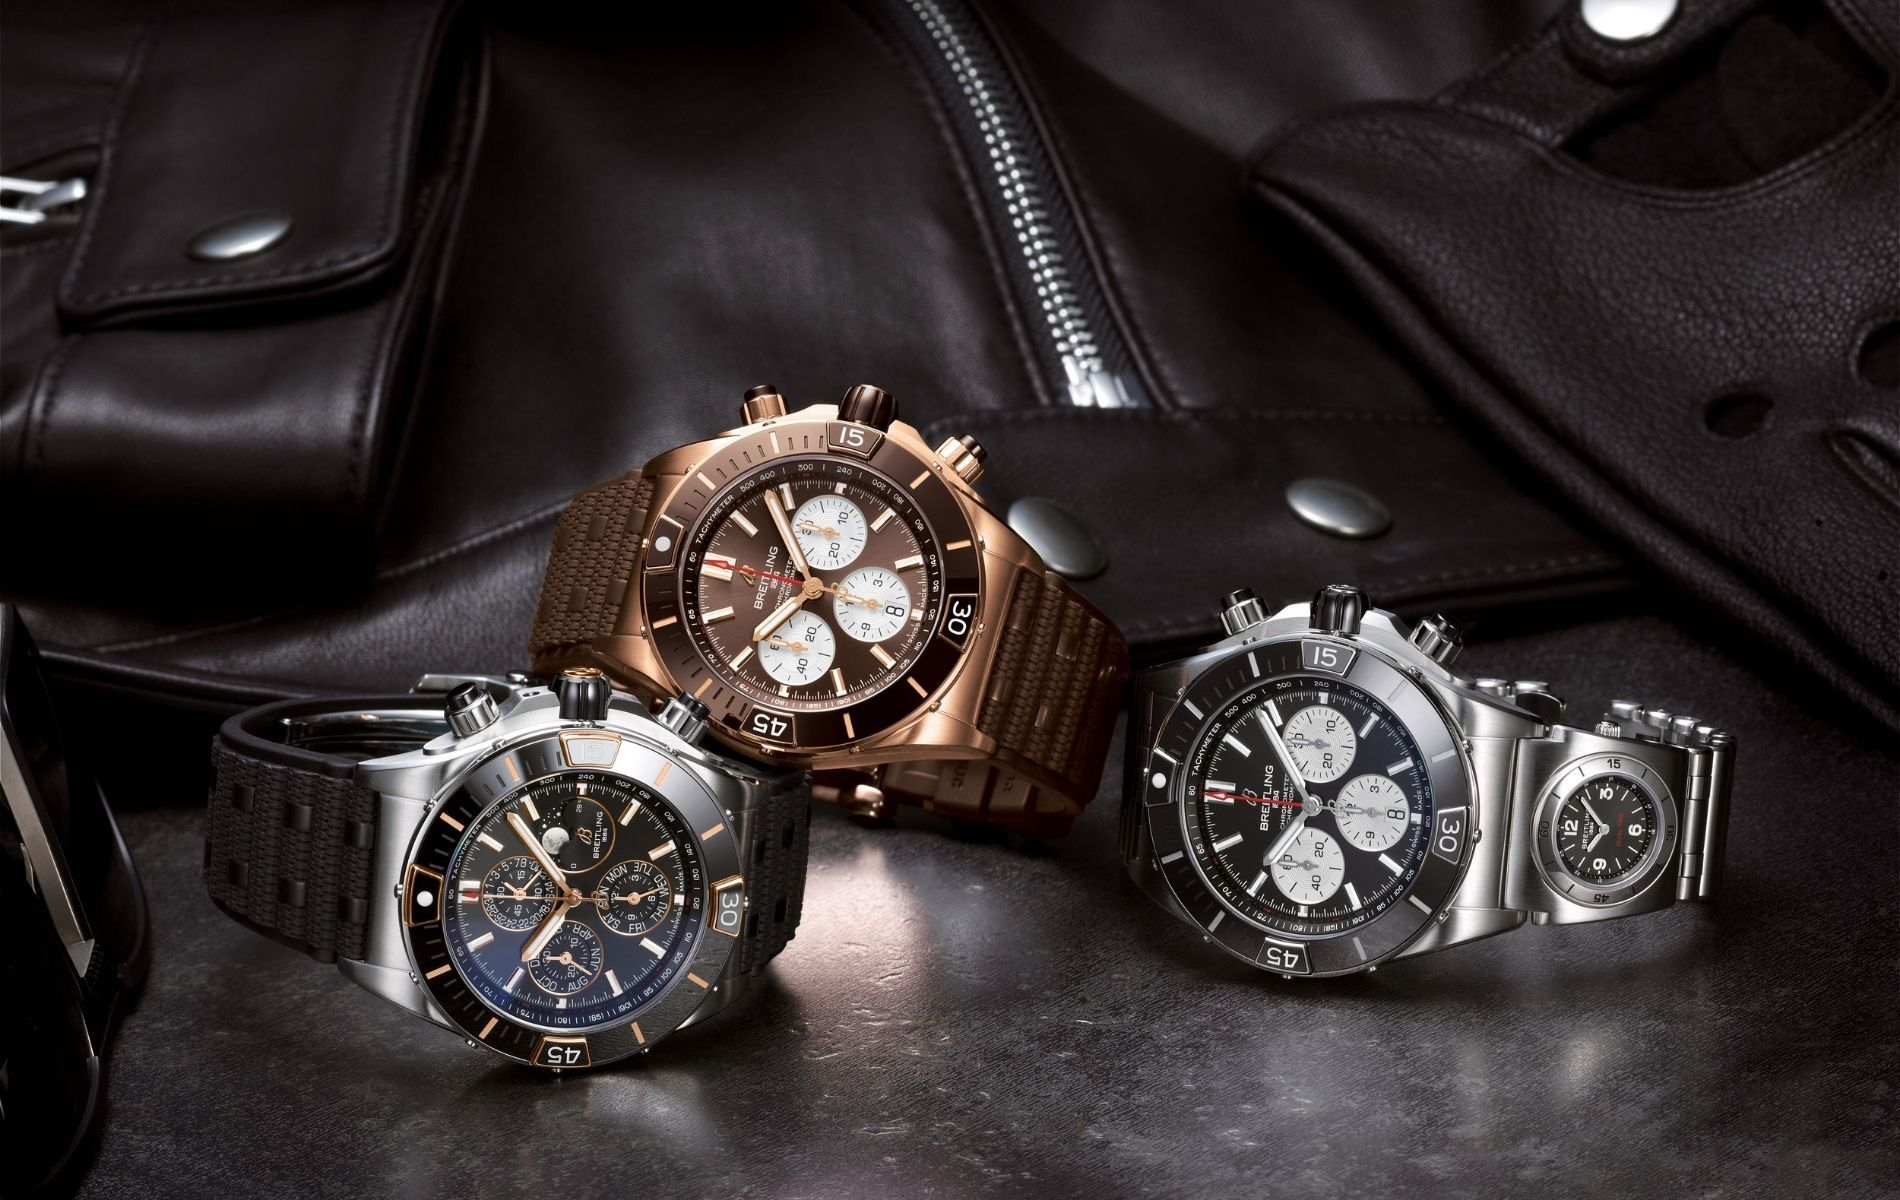 The new Super Chronomat collection